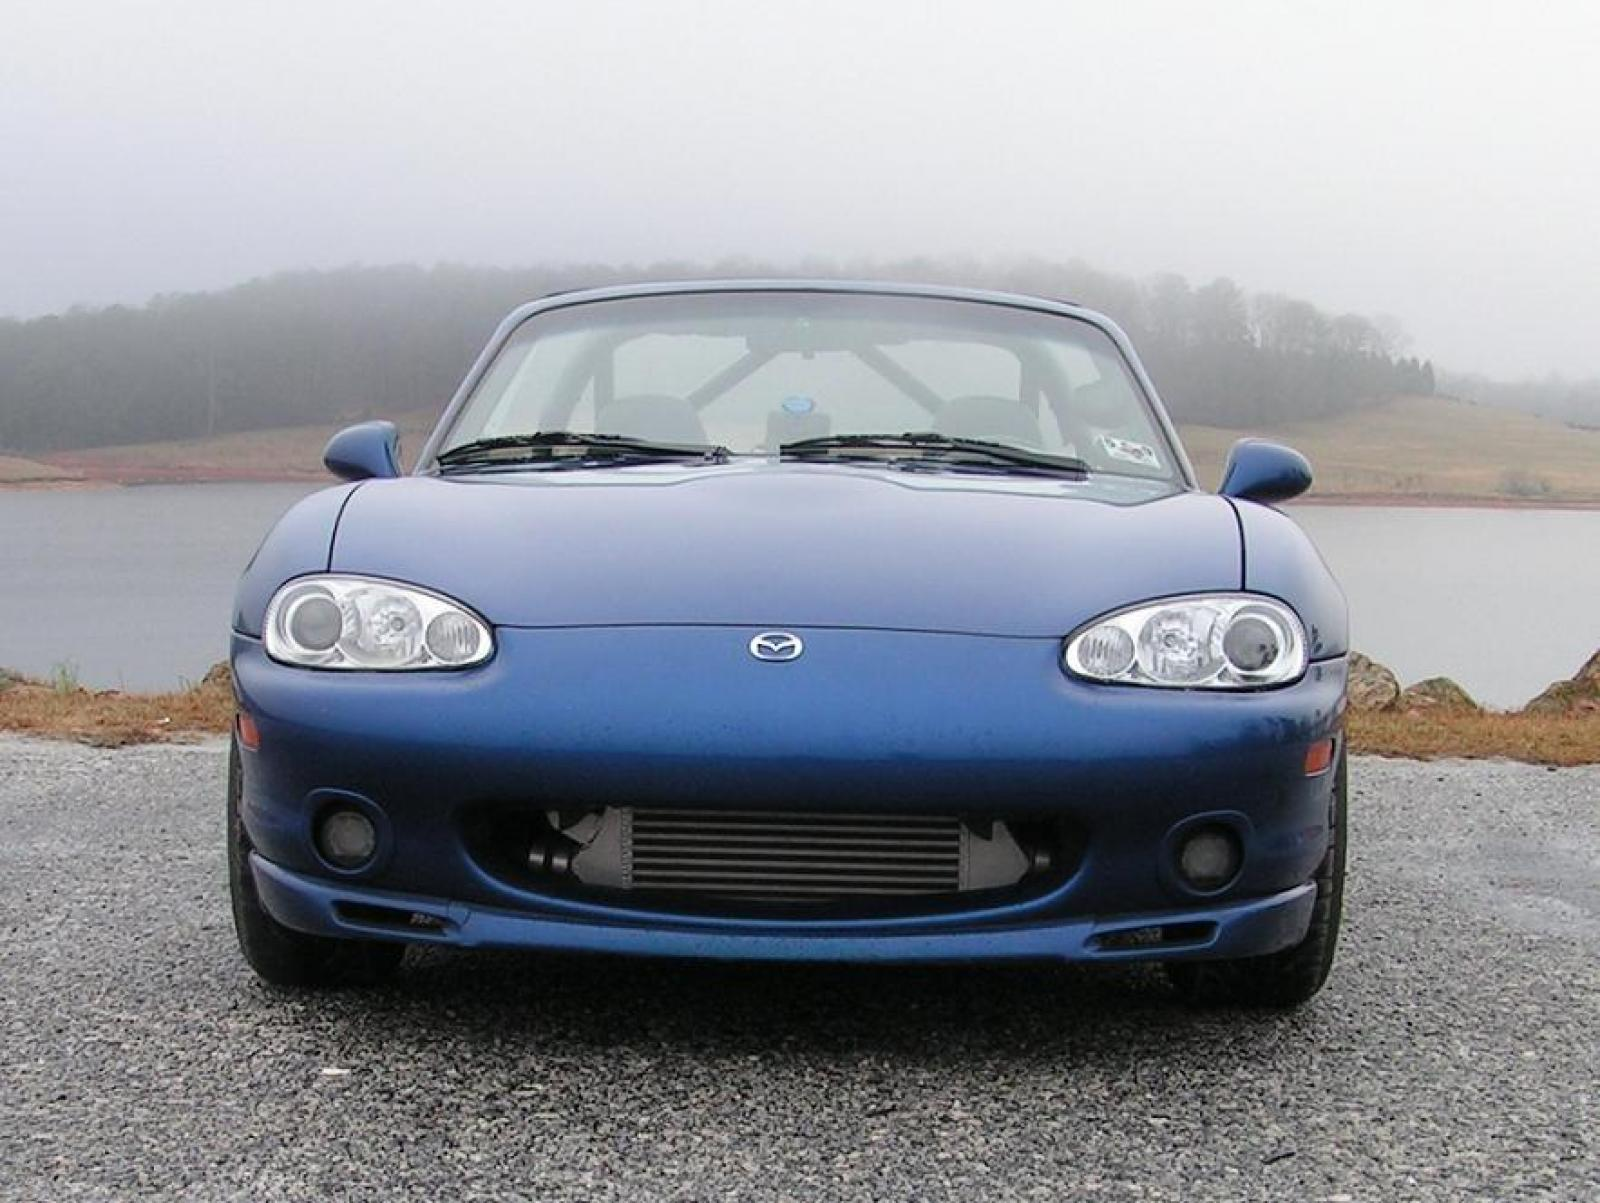 1999 mazda mx 5 miata information and photos zombiedrive. Black Bedroom Furniture Sets. Home Design Ideas